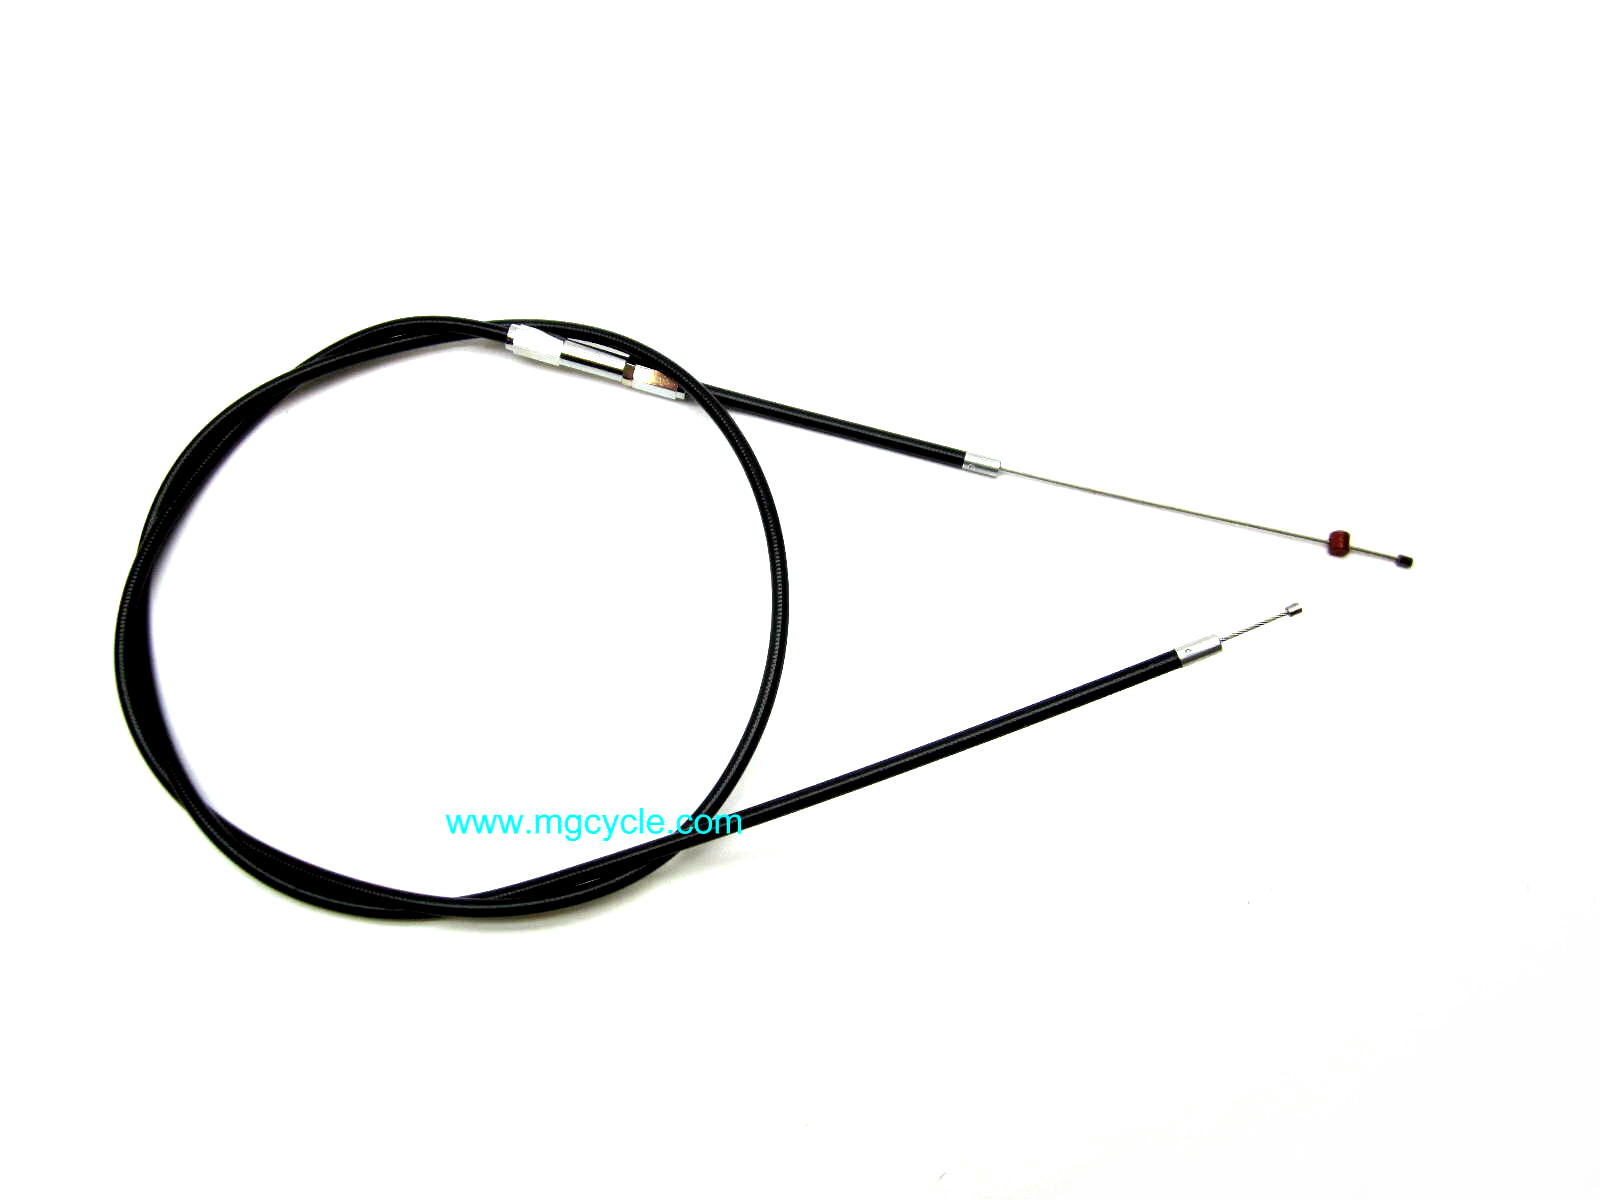 47 inch custom throttle cable, Tommaselli 2C to Dellorto PHF PHM